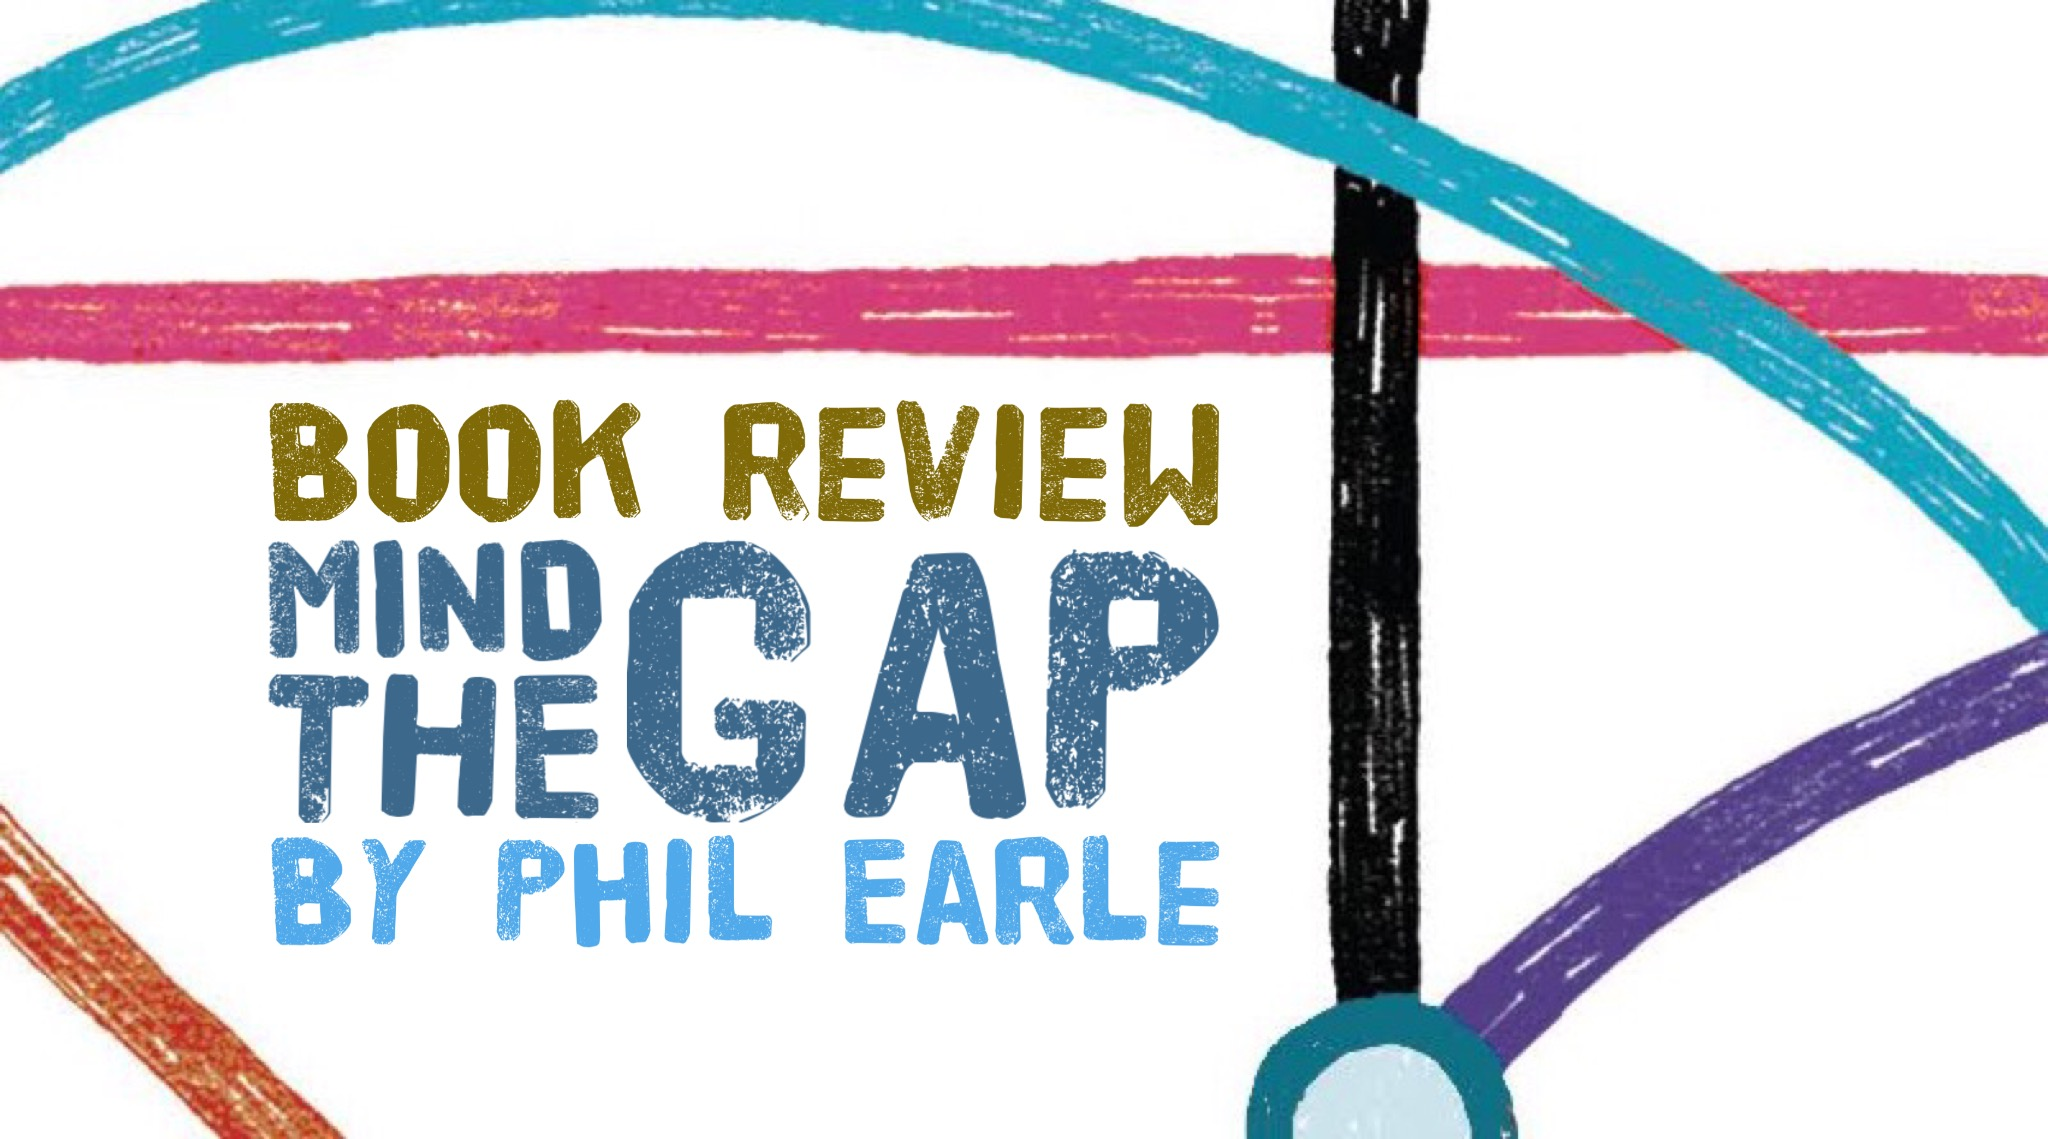 Mind The Gap by Phil Earle.